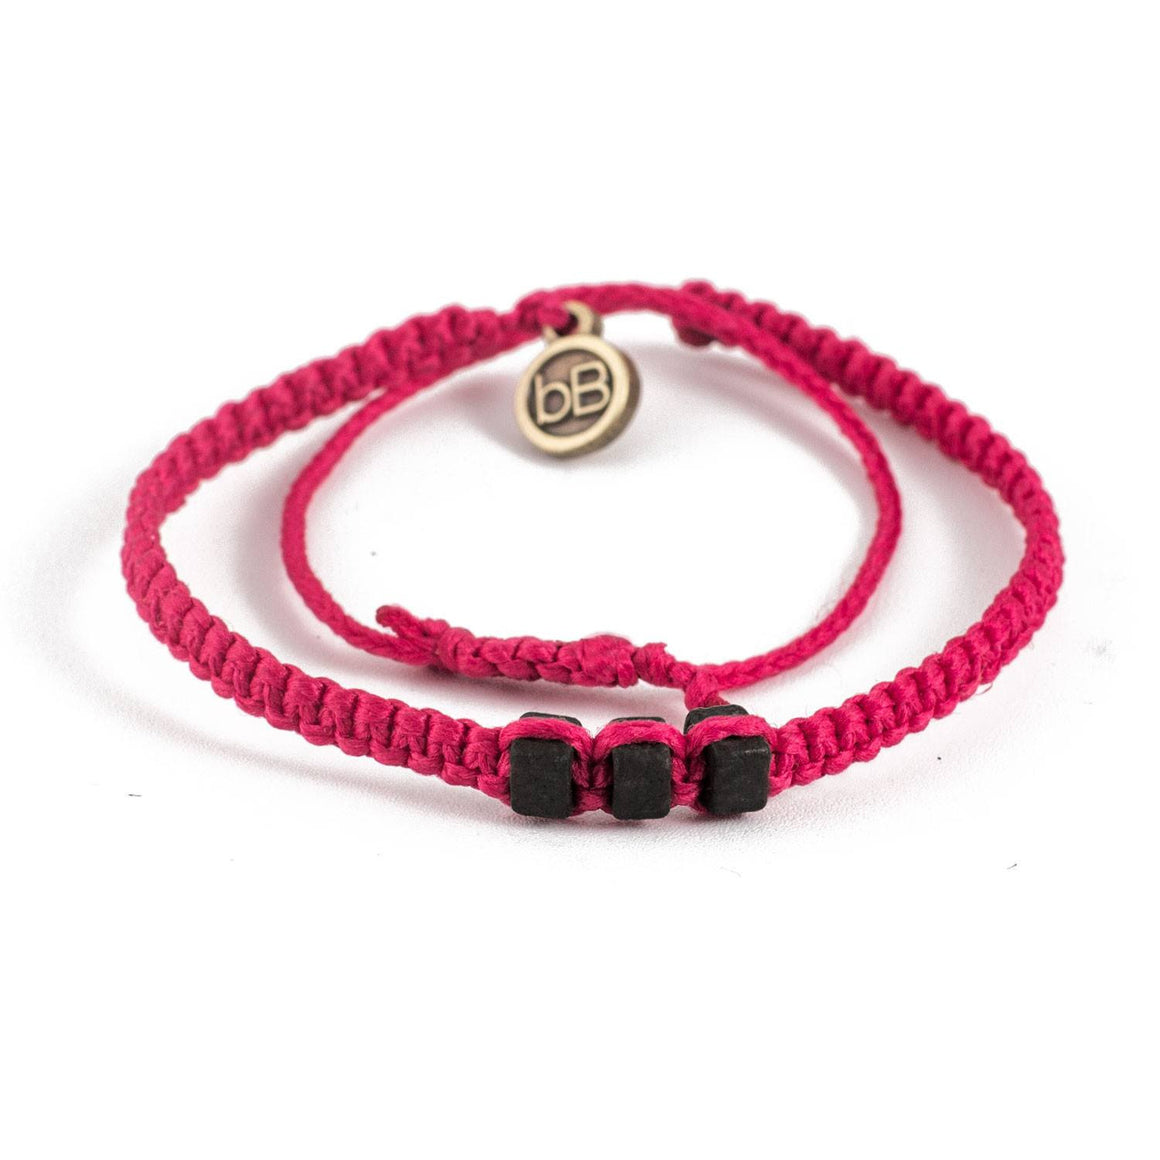 Black Chasqui Strawberry Pink bracelets that help children cover